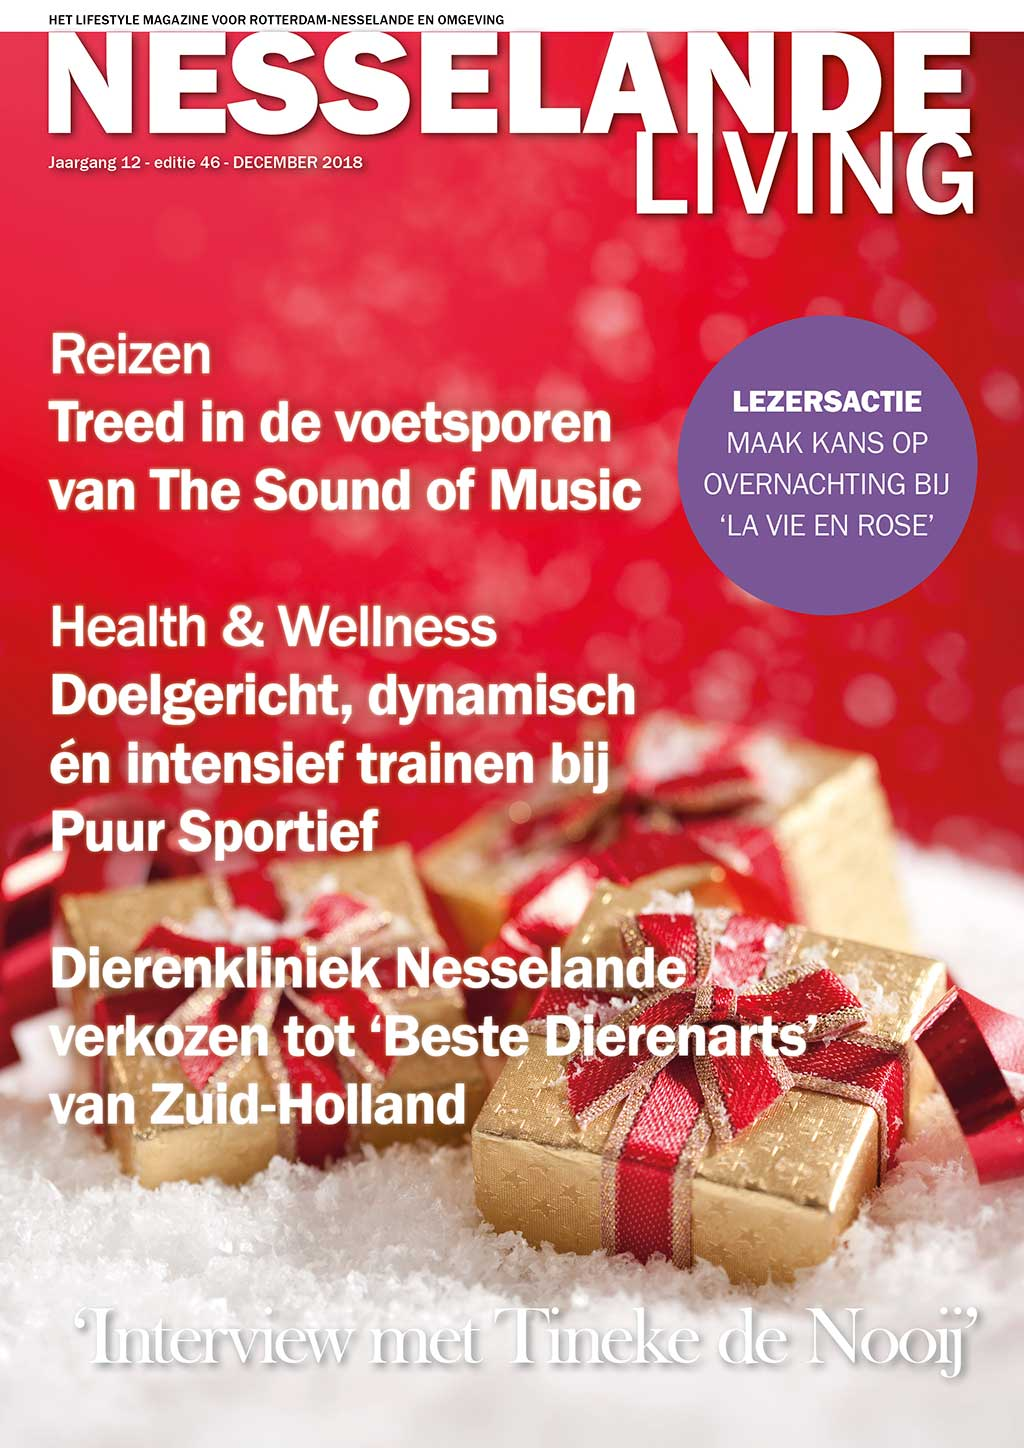 Cover Nesselande Living editie 46 - december 2018